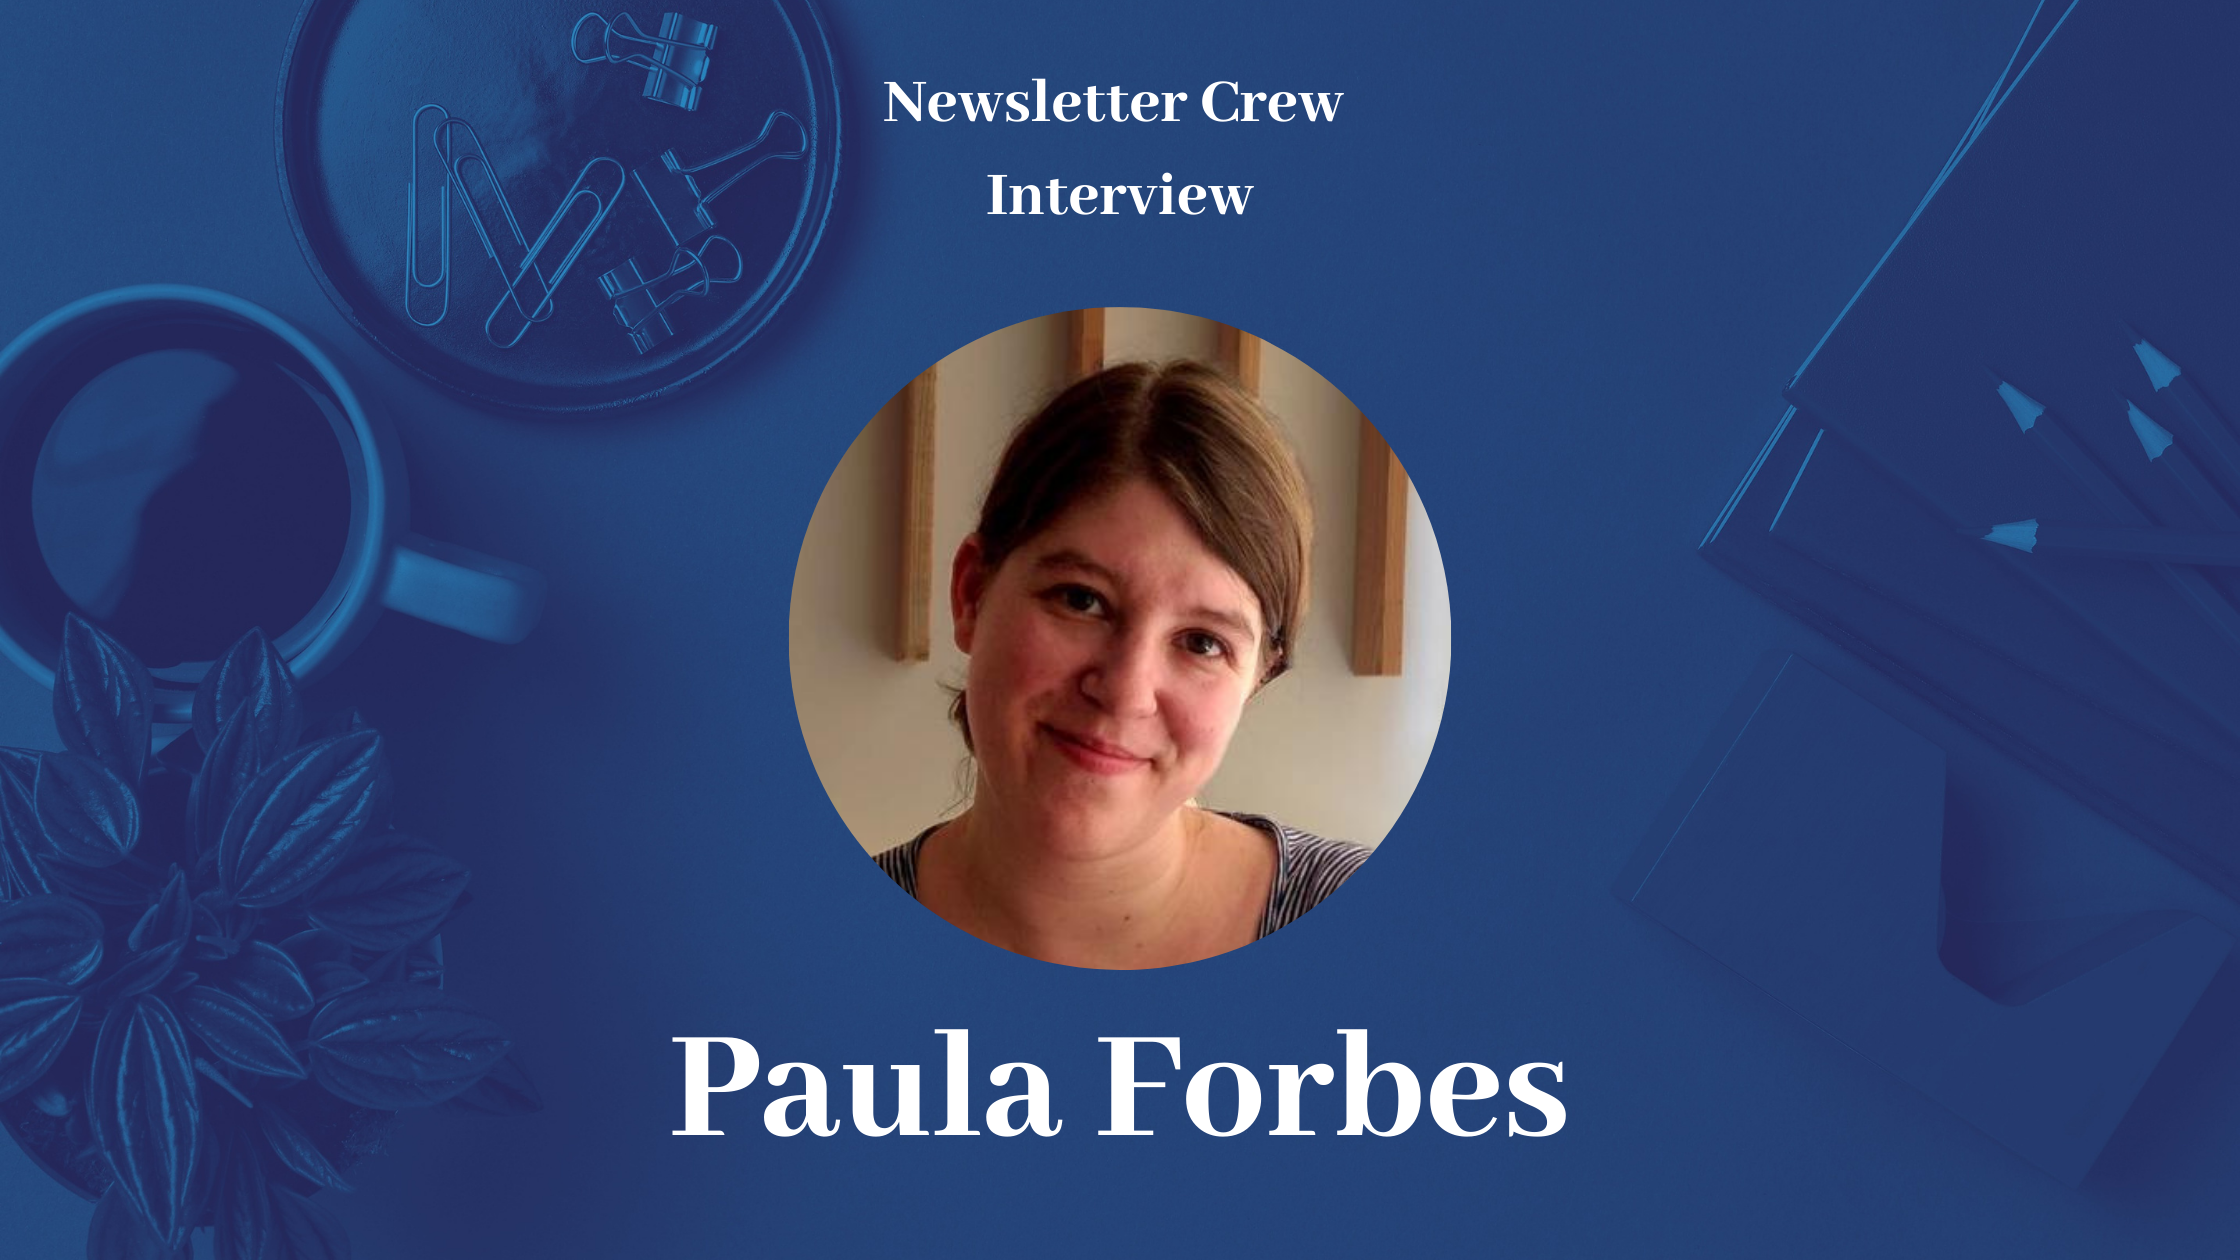 Cookbooks and newsletters with Paula Forbes